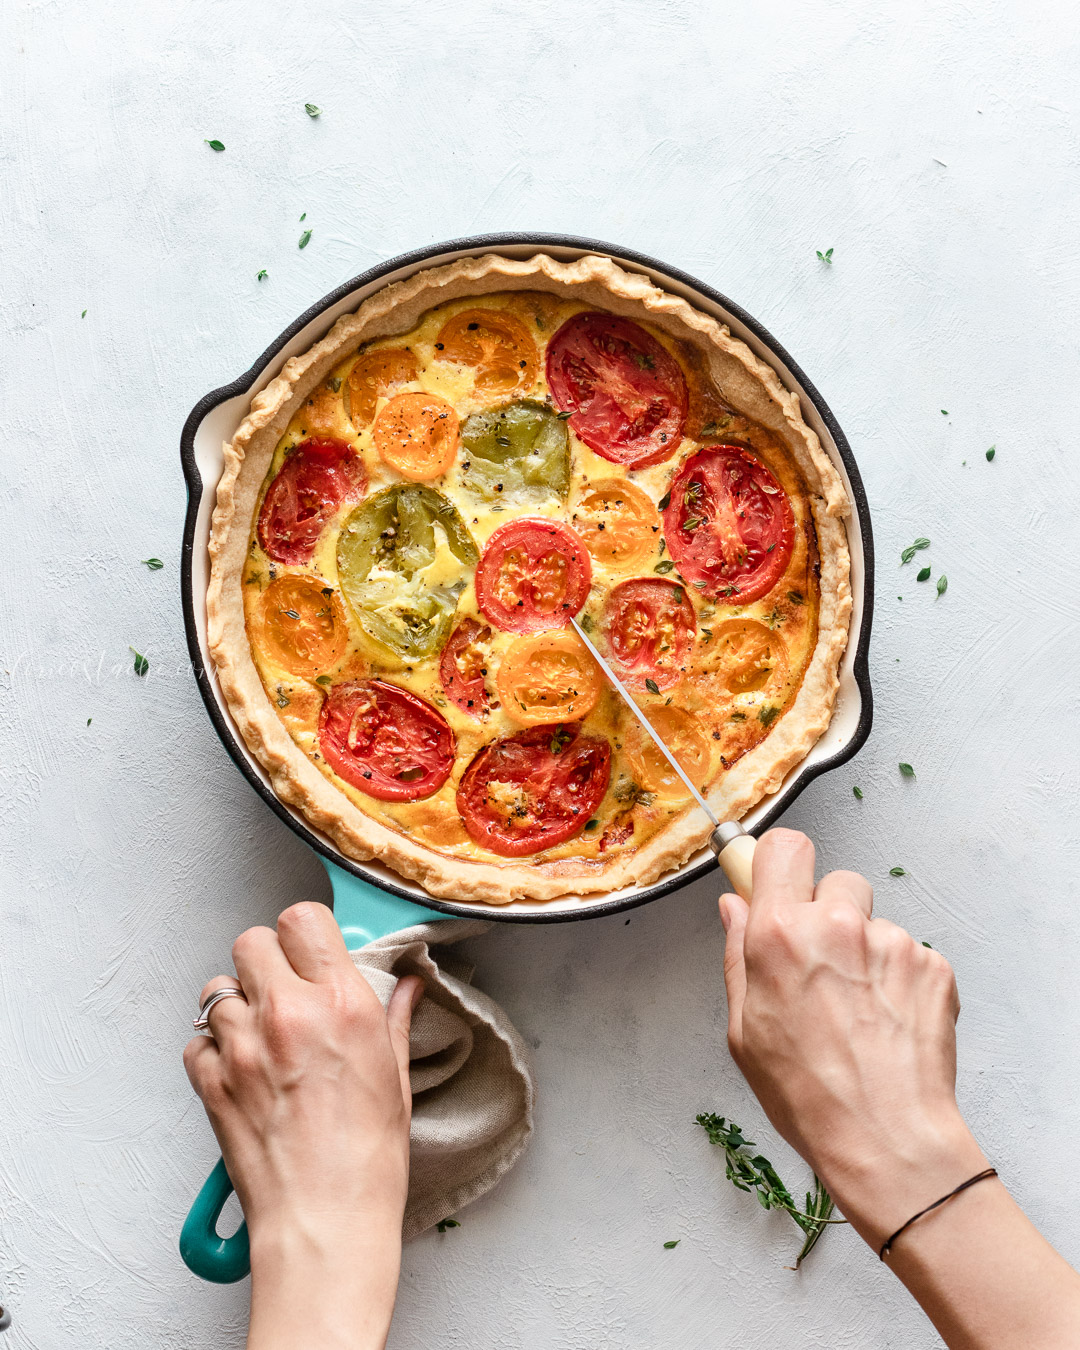 Summer Tomato Tart With Herbs & Zucchini - rustic tart dough food photography